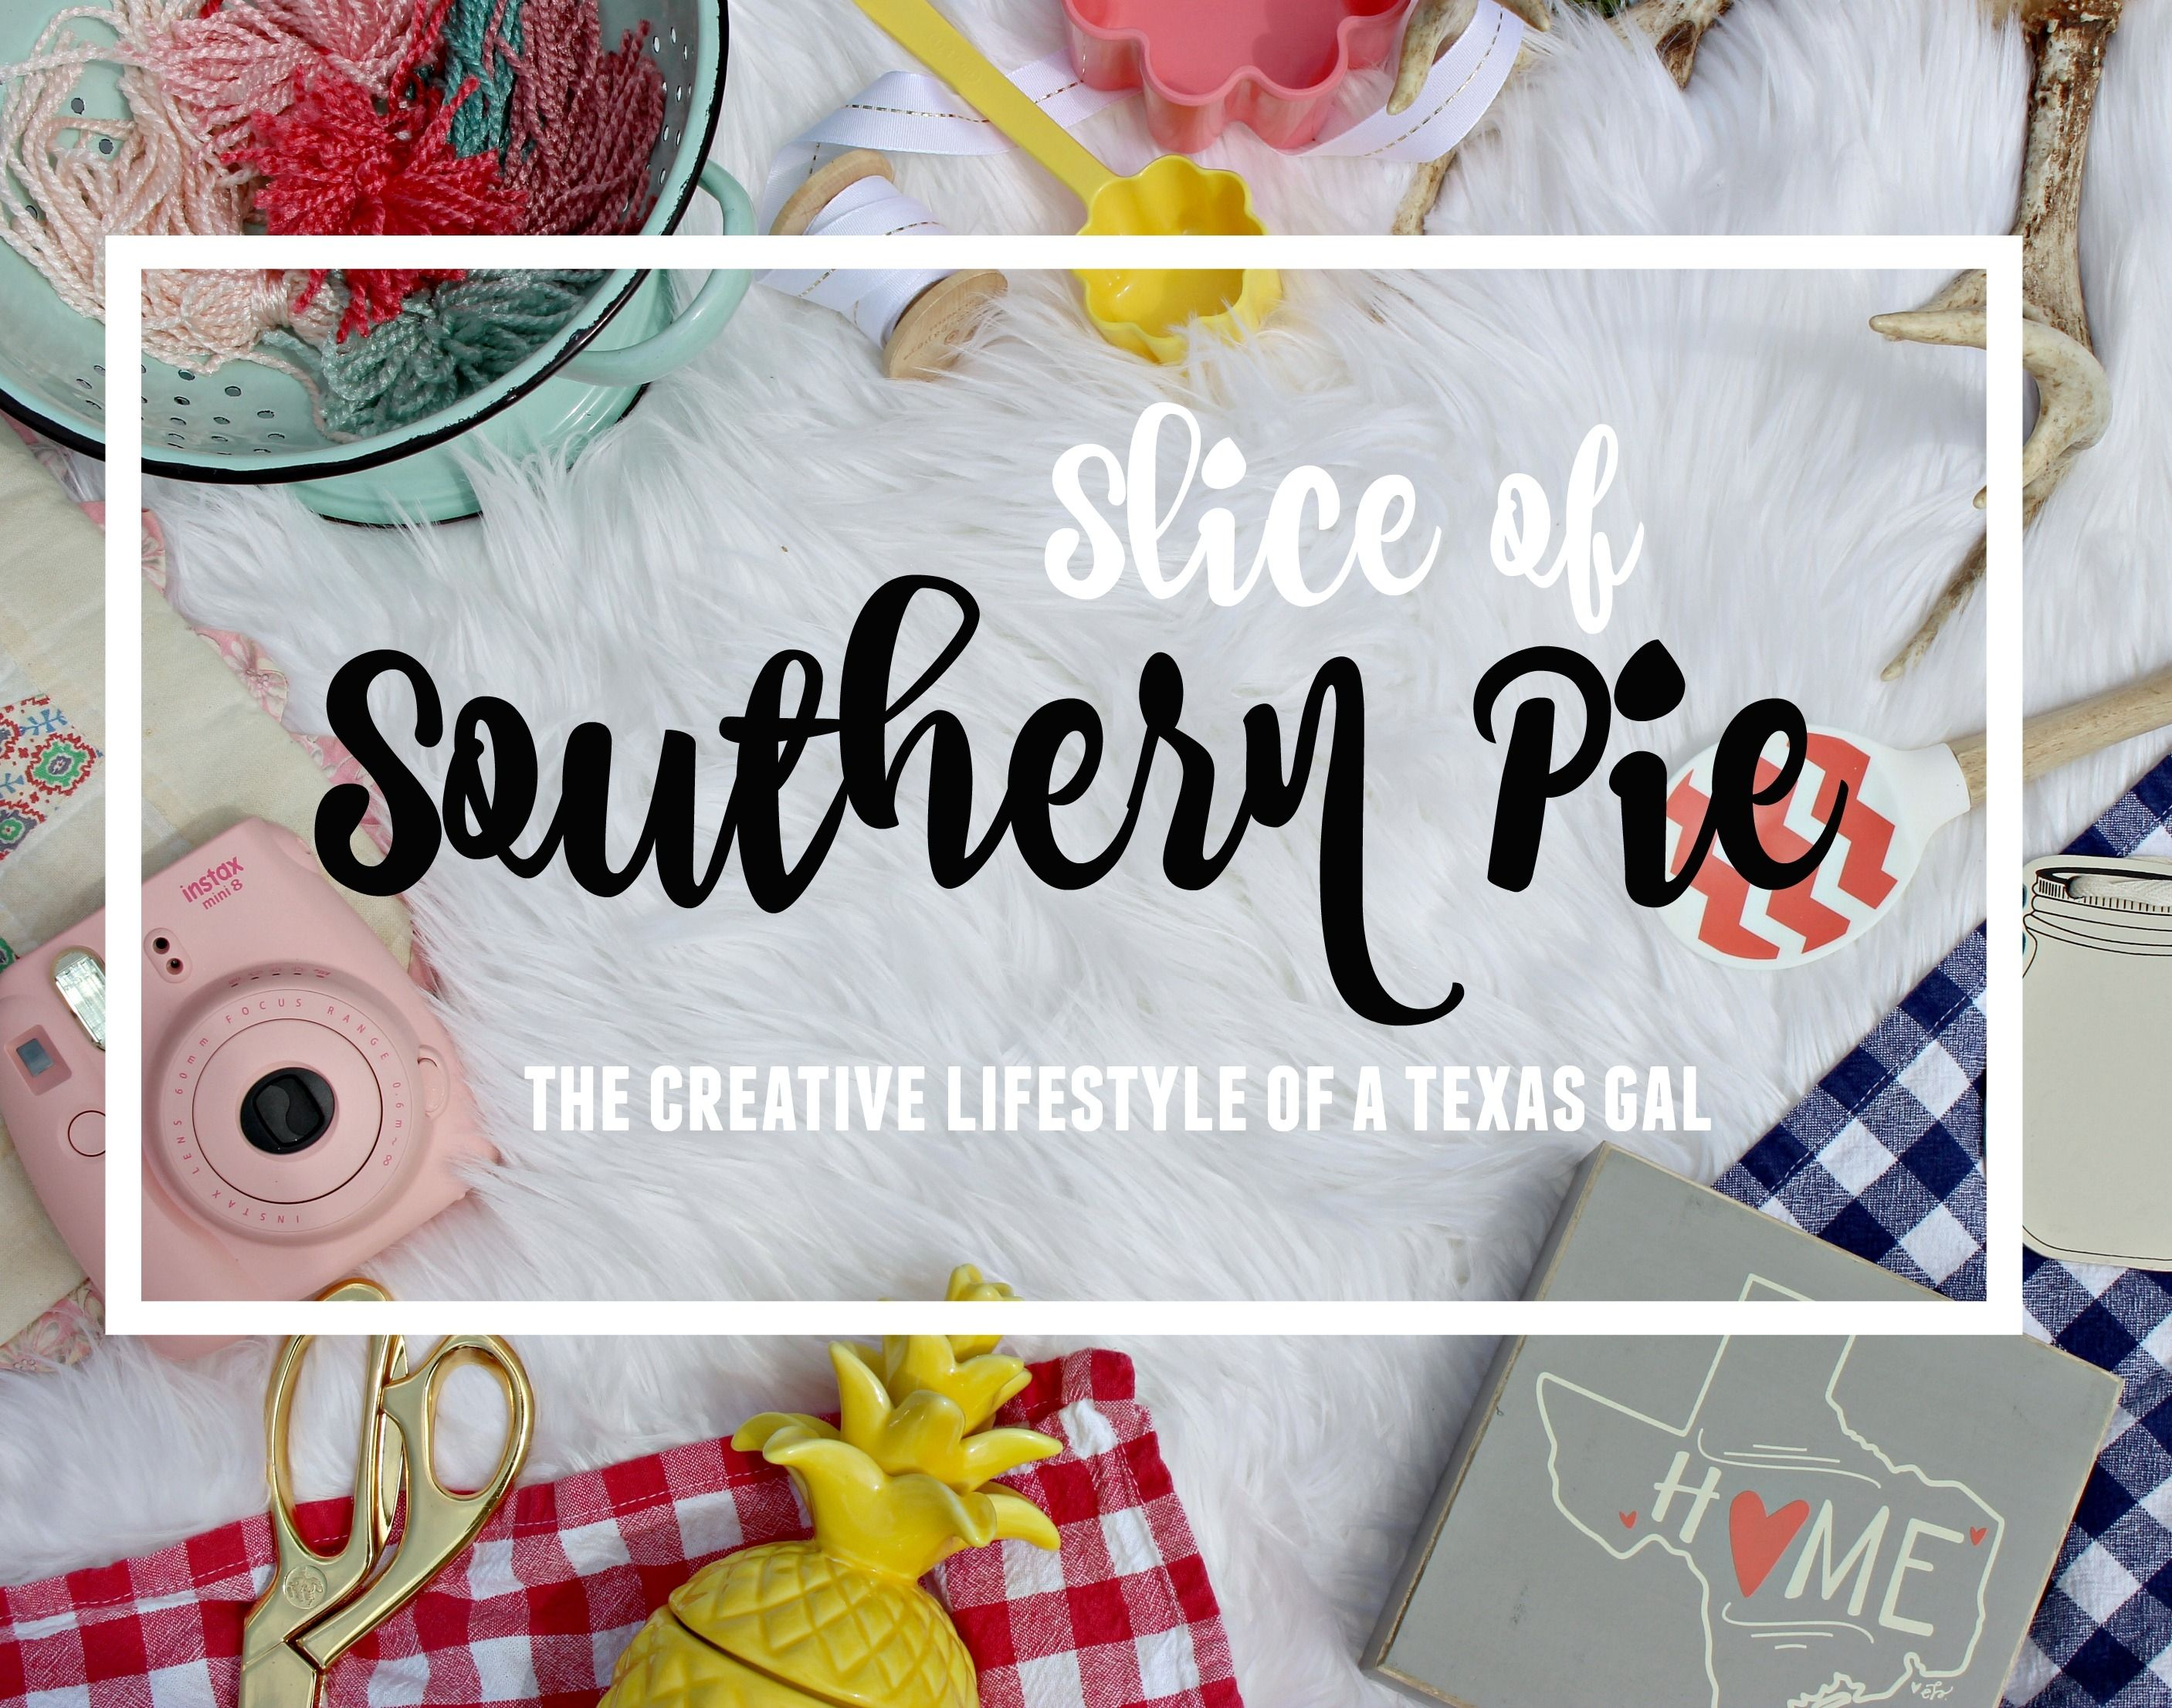 Slice of Southern Pie